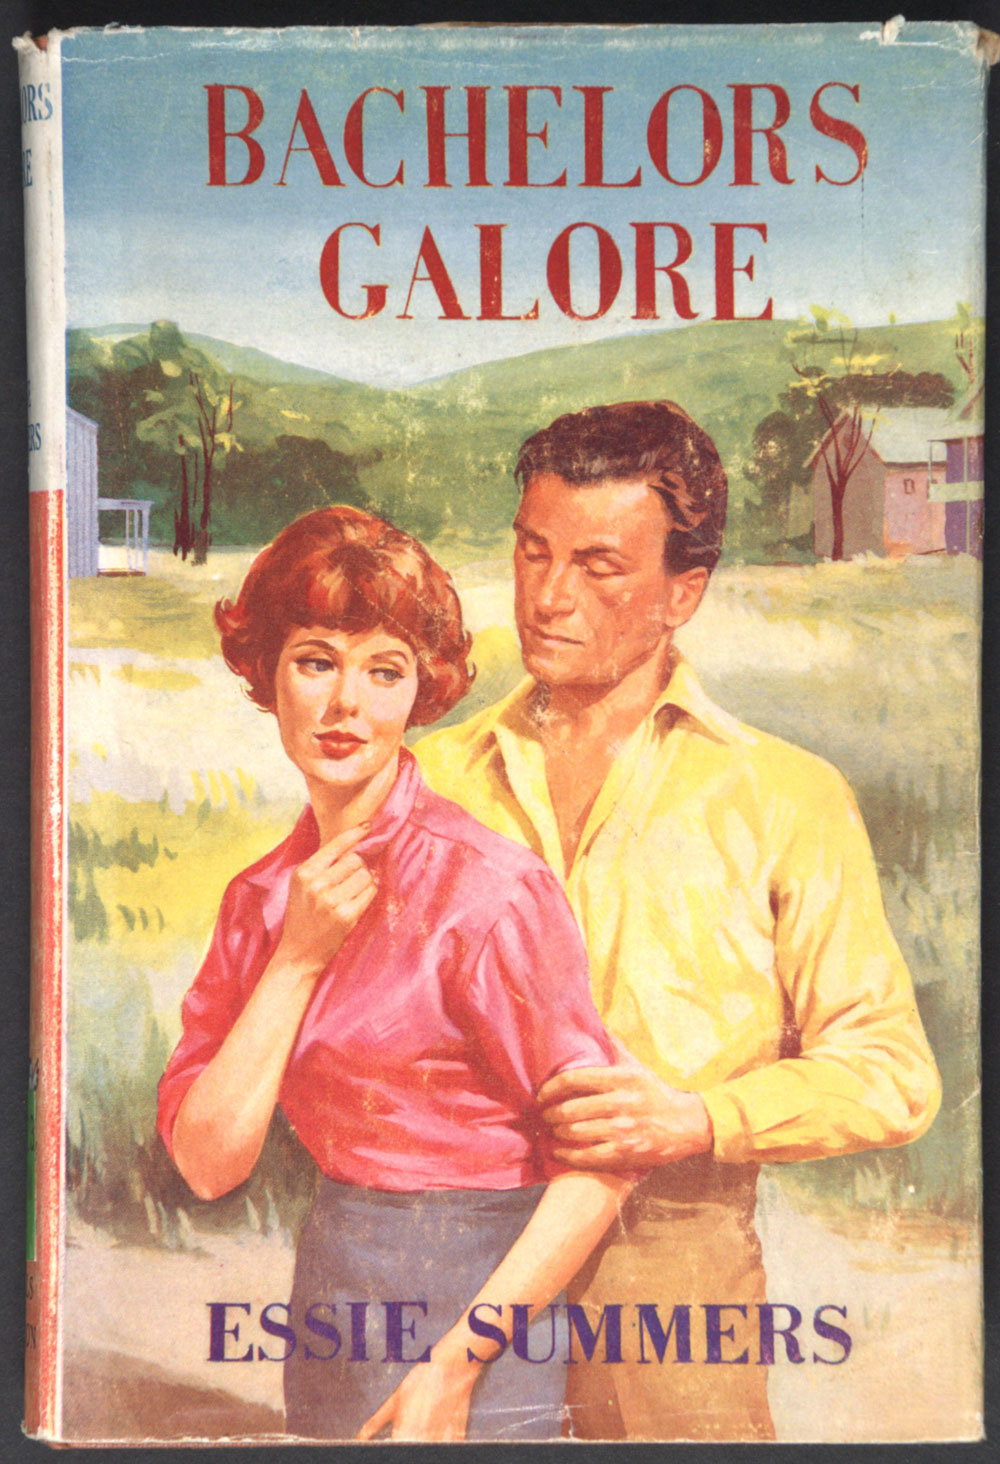 Essie Summers. Bachelors galore. London: Mills & Boon, 1958.